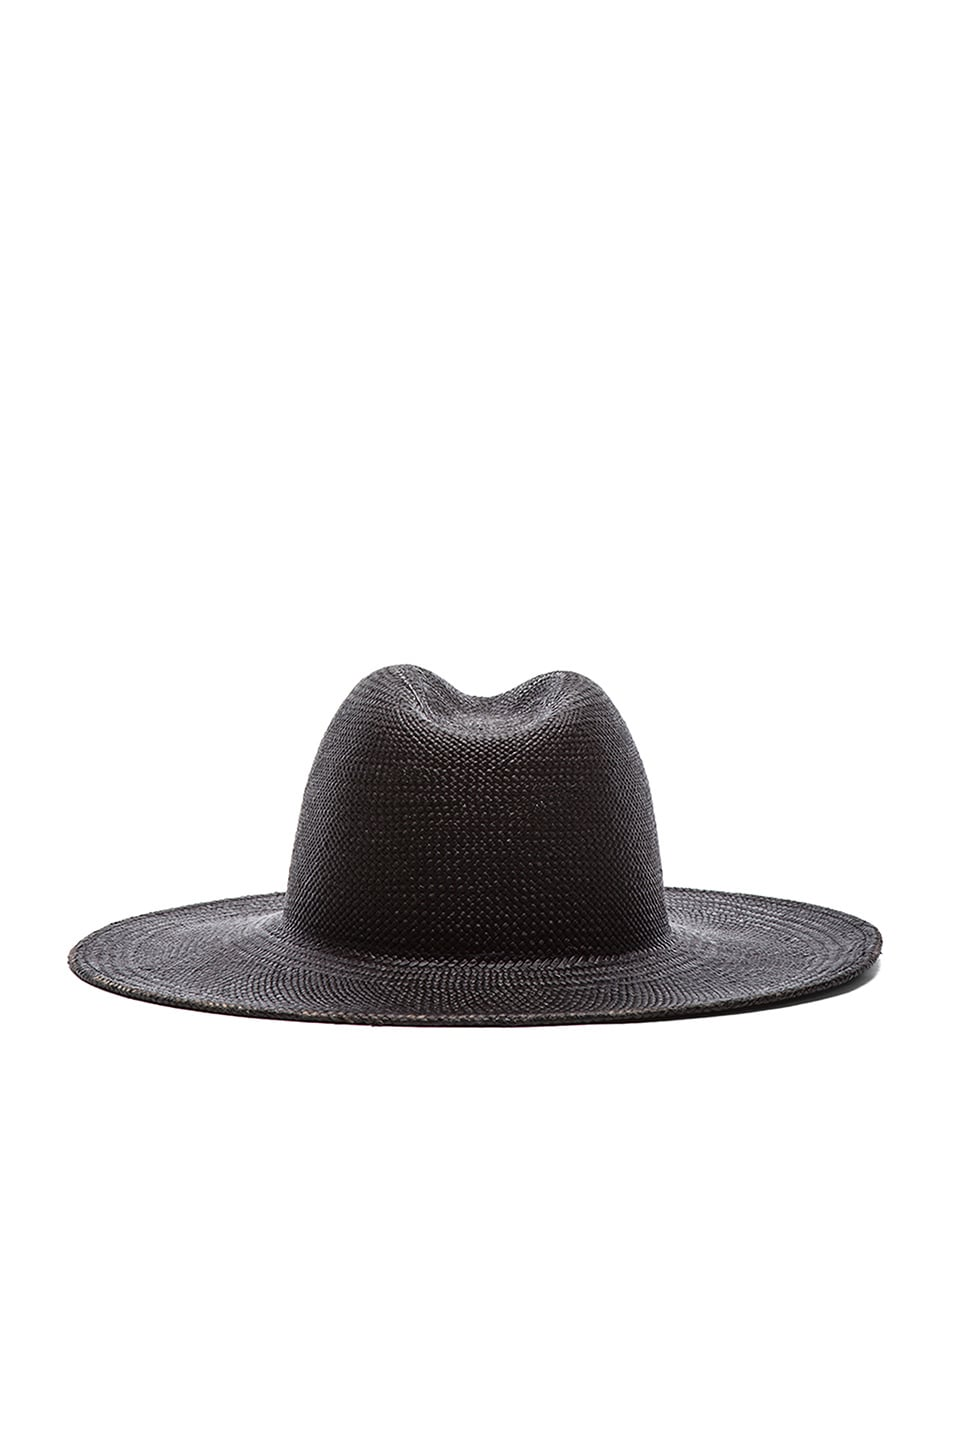 Image 5 of Janessa Leone Rita Straw Hat in Black